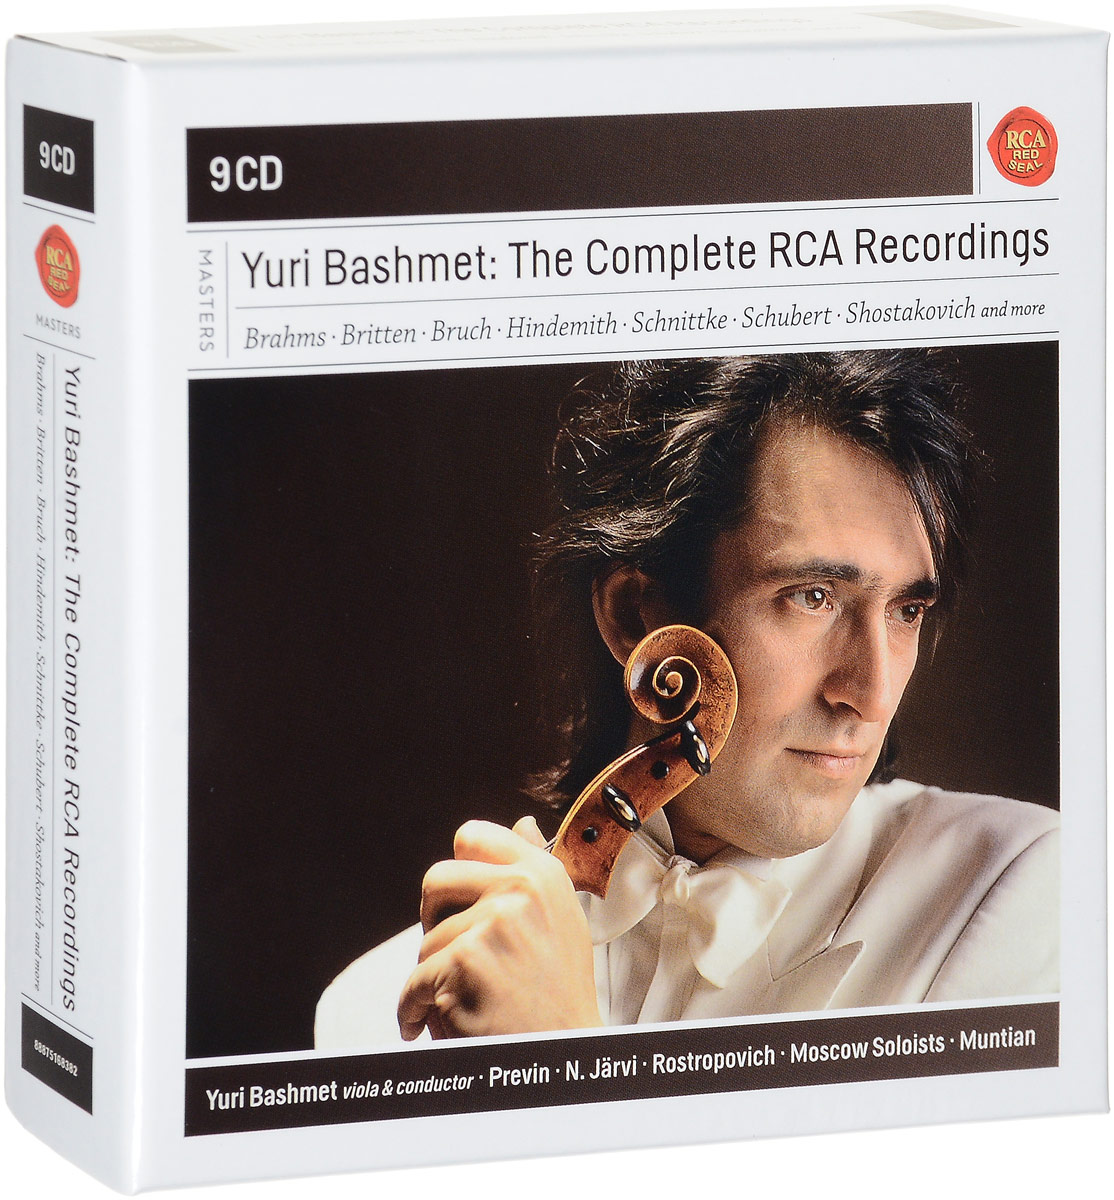 лучшая цена Юрий Башмет Yuri Bashmet. Yuri Bashmet - The Complete RCA Recordings (9 CD)